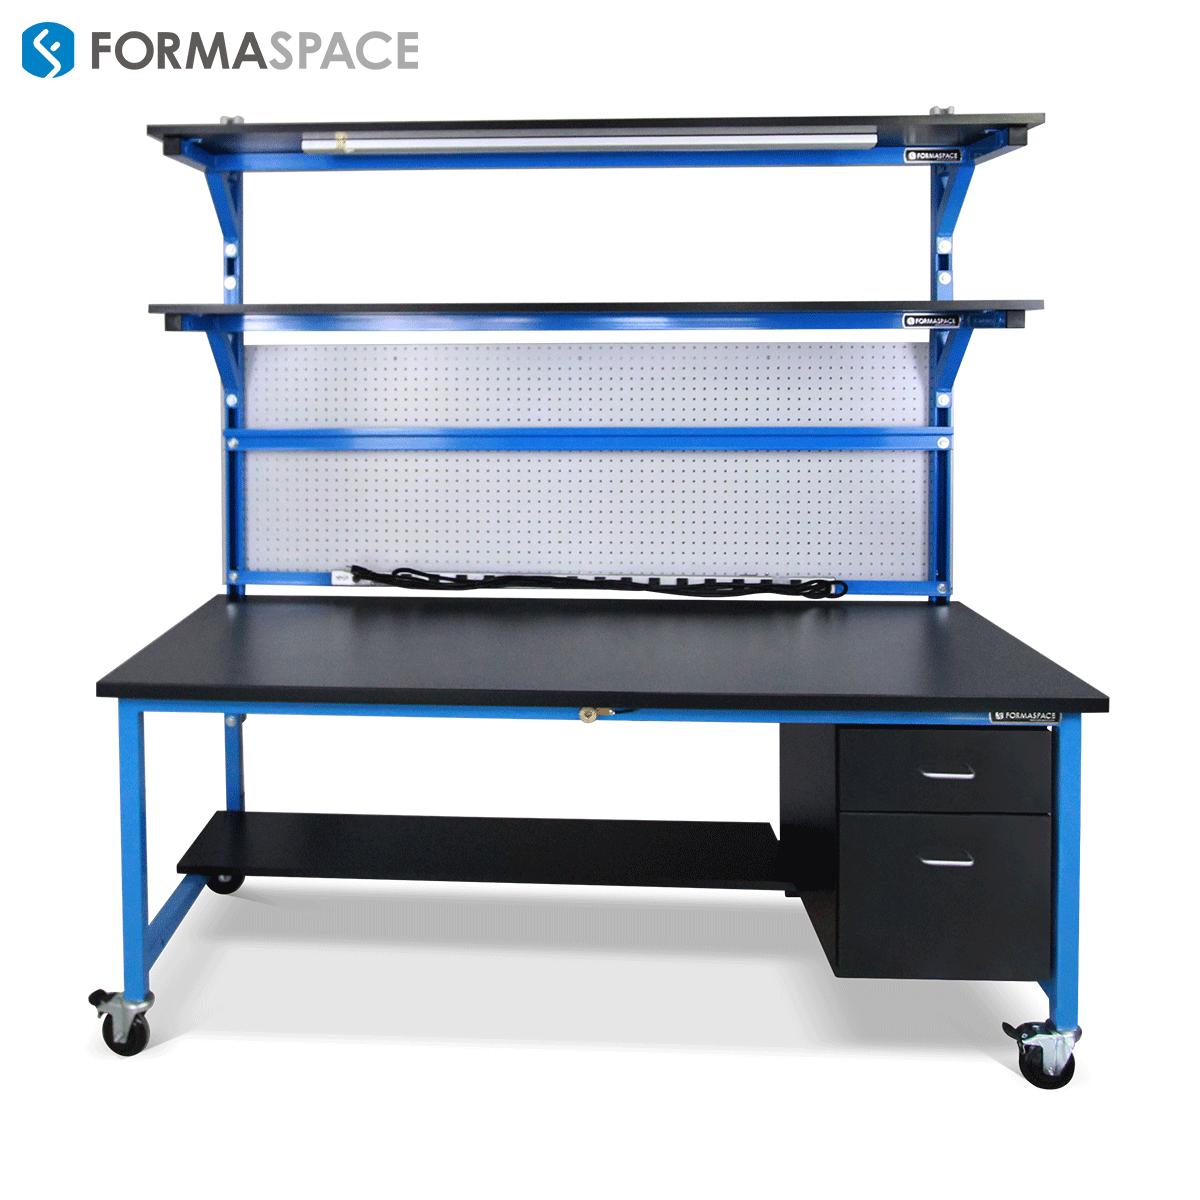 Benchmarx™ with Blue Frame